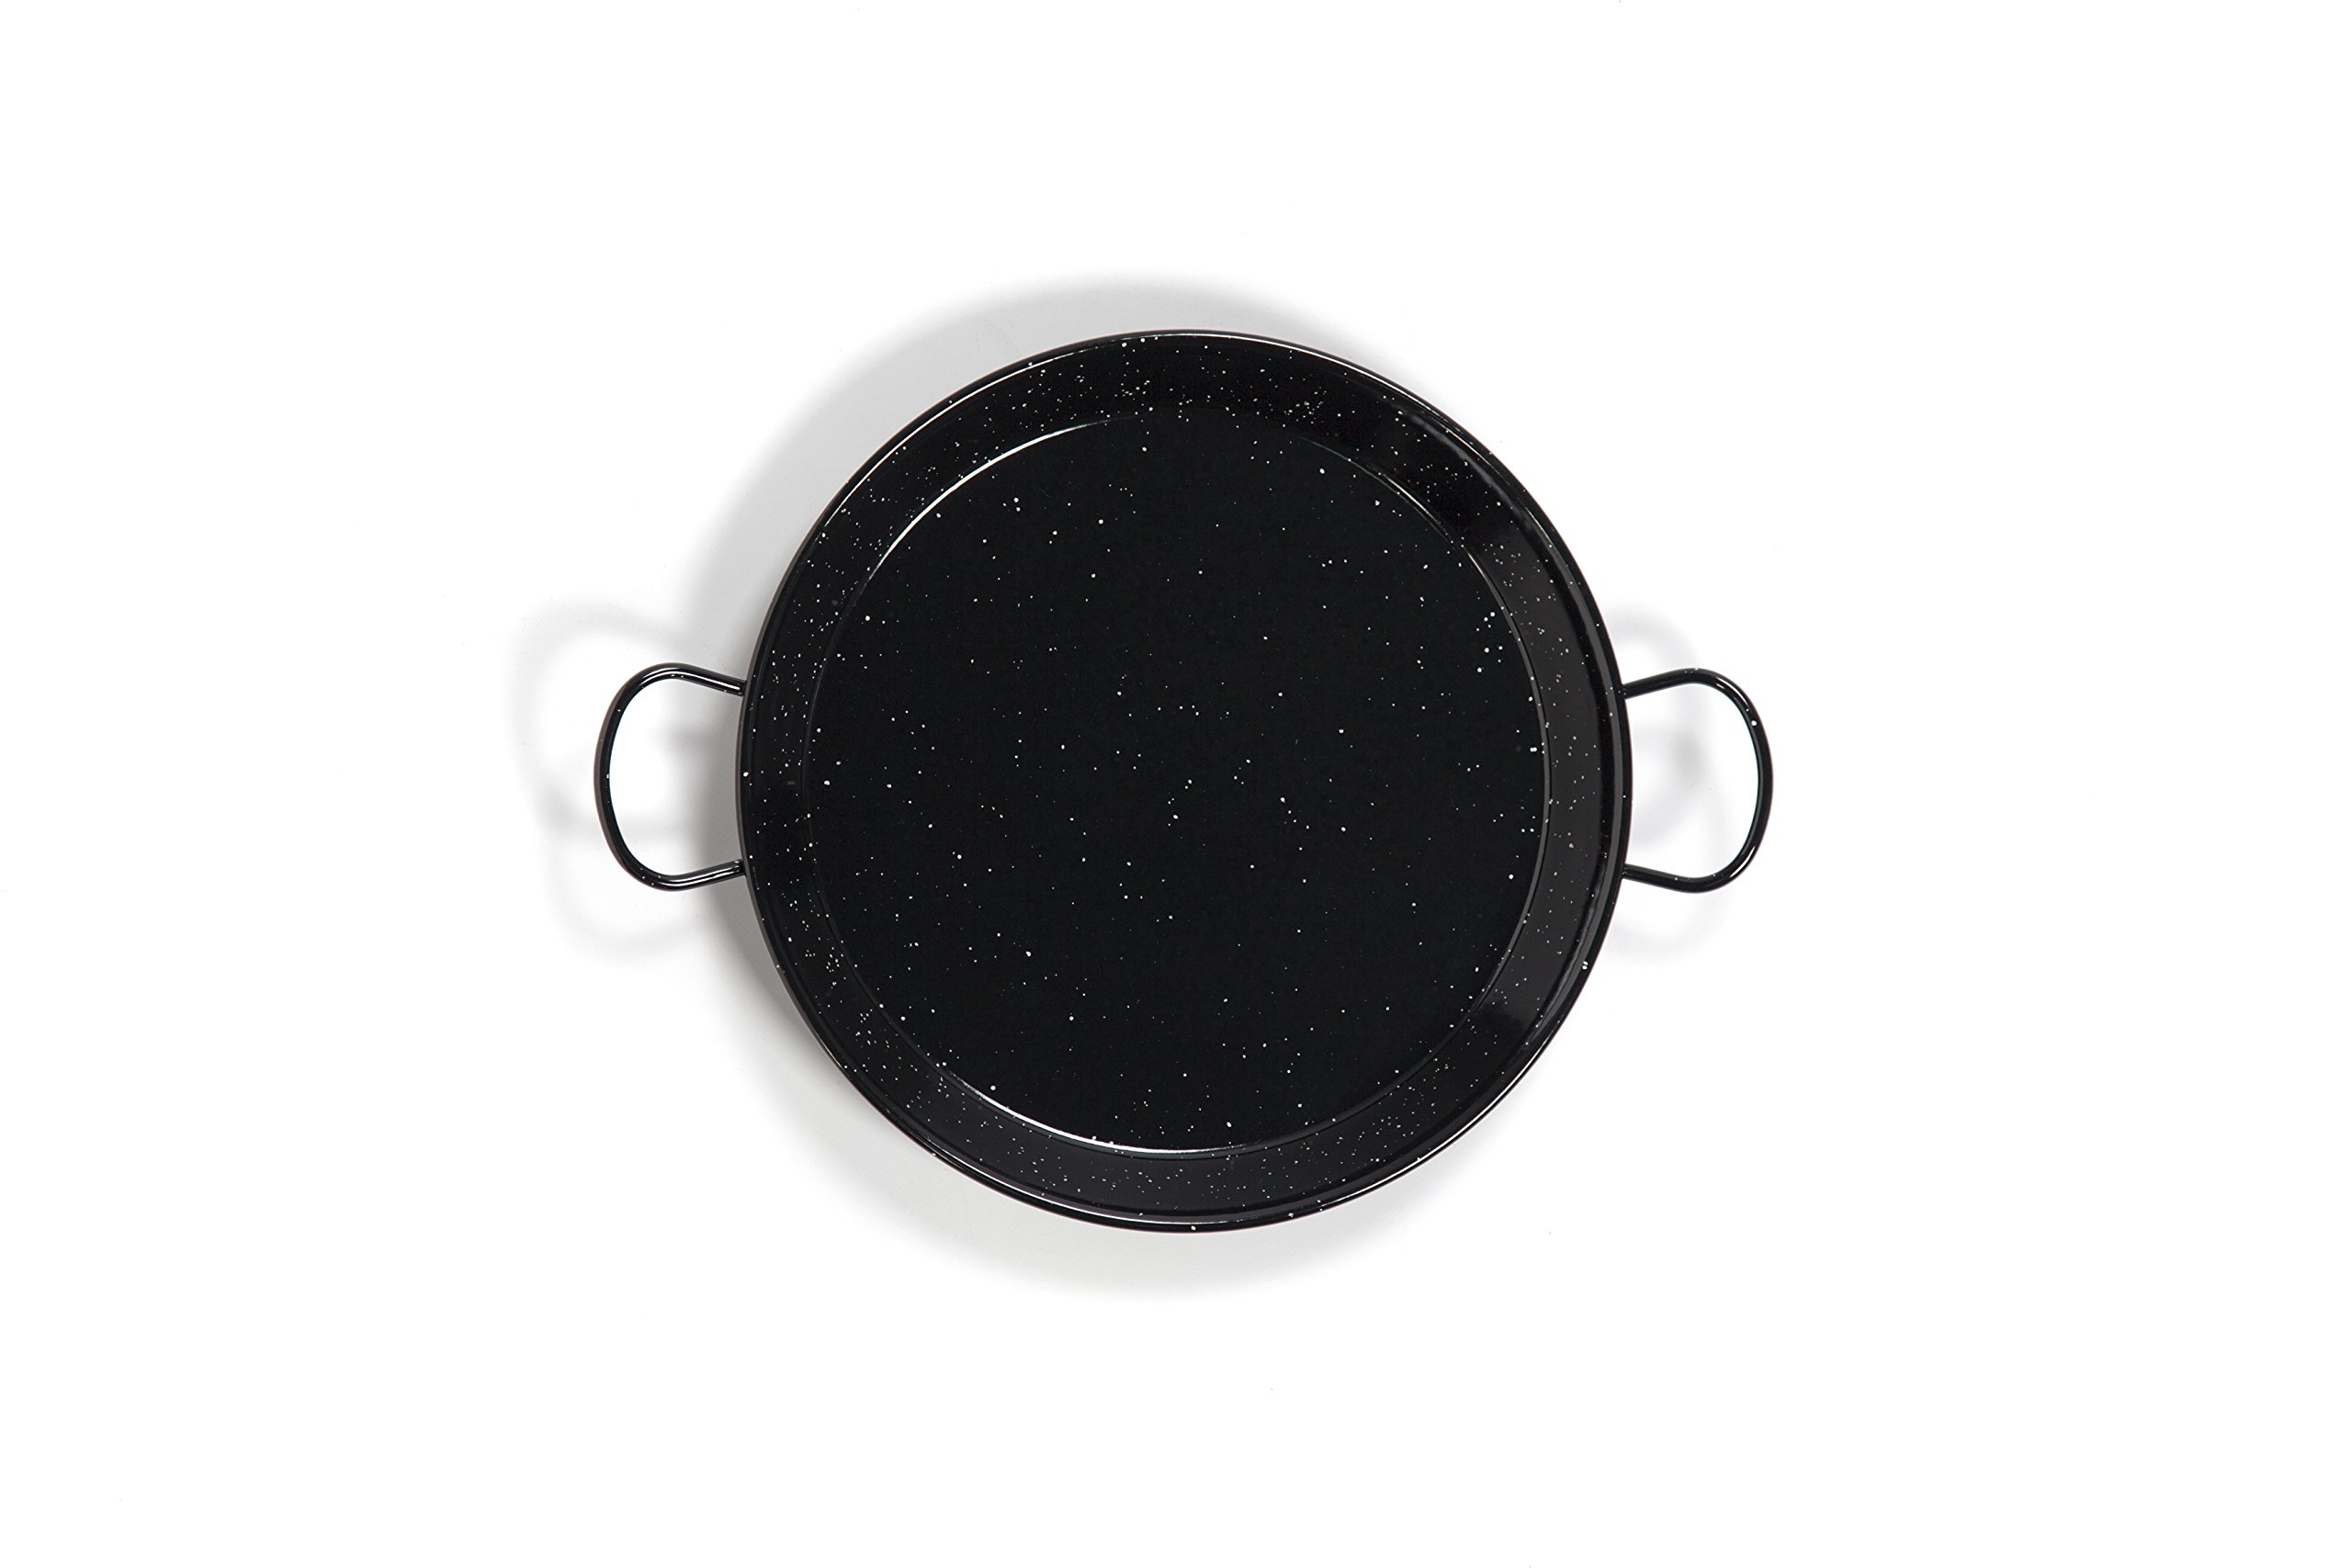 Polished Enamelled Valencian paella pan 20Inch / 50cm /13 Servings